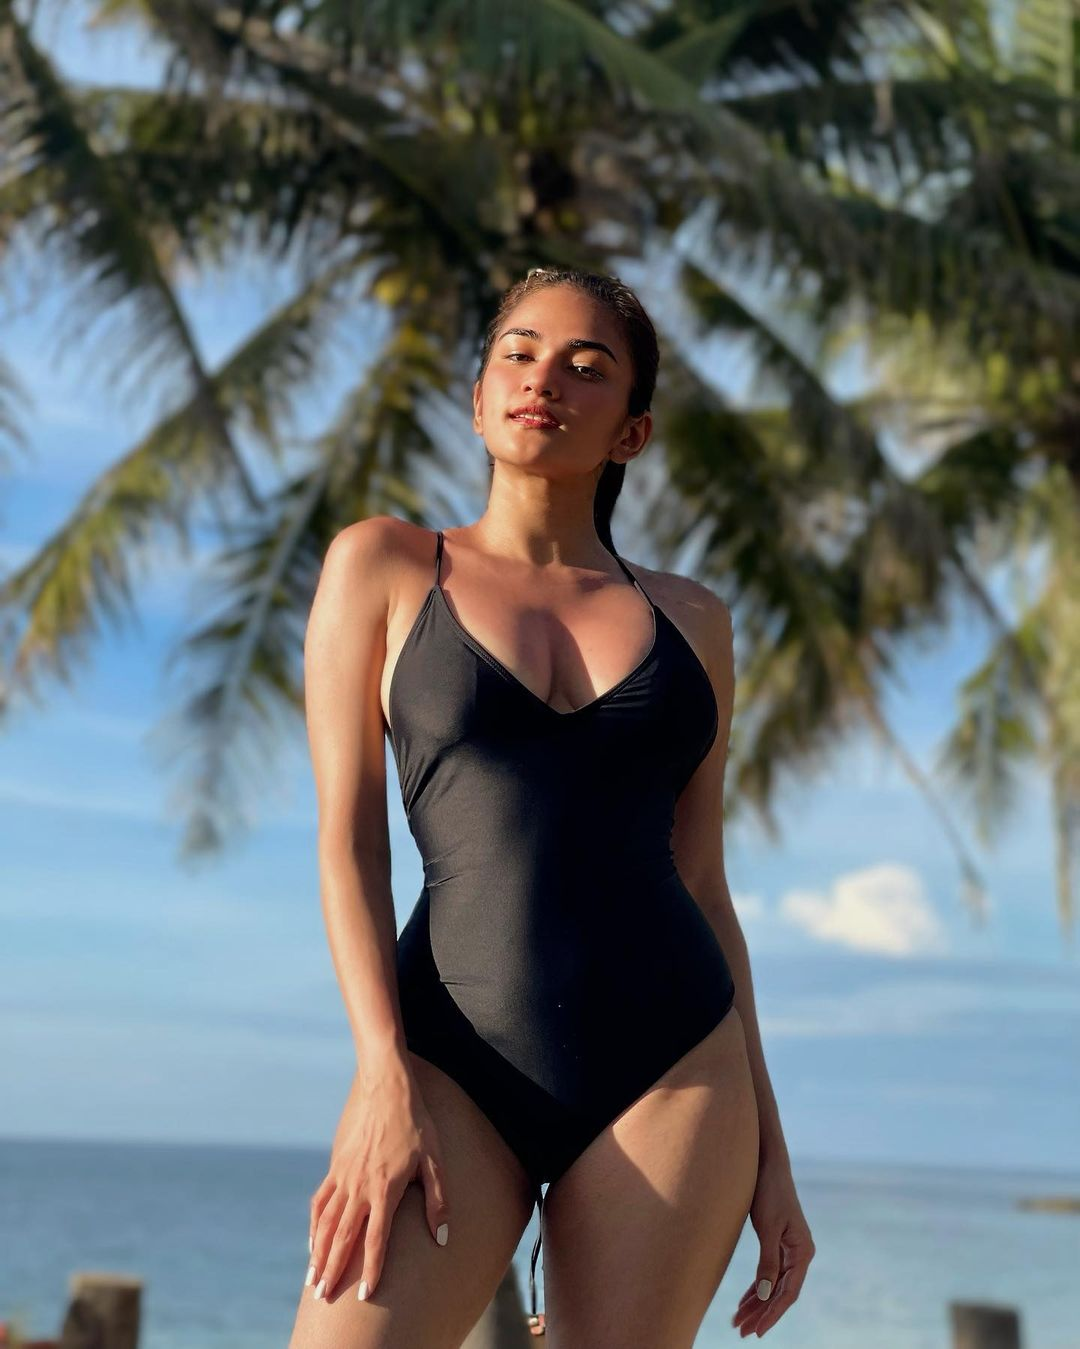 miss universe philippines 2021 candidates swimsuit ootds